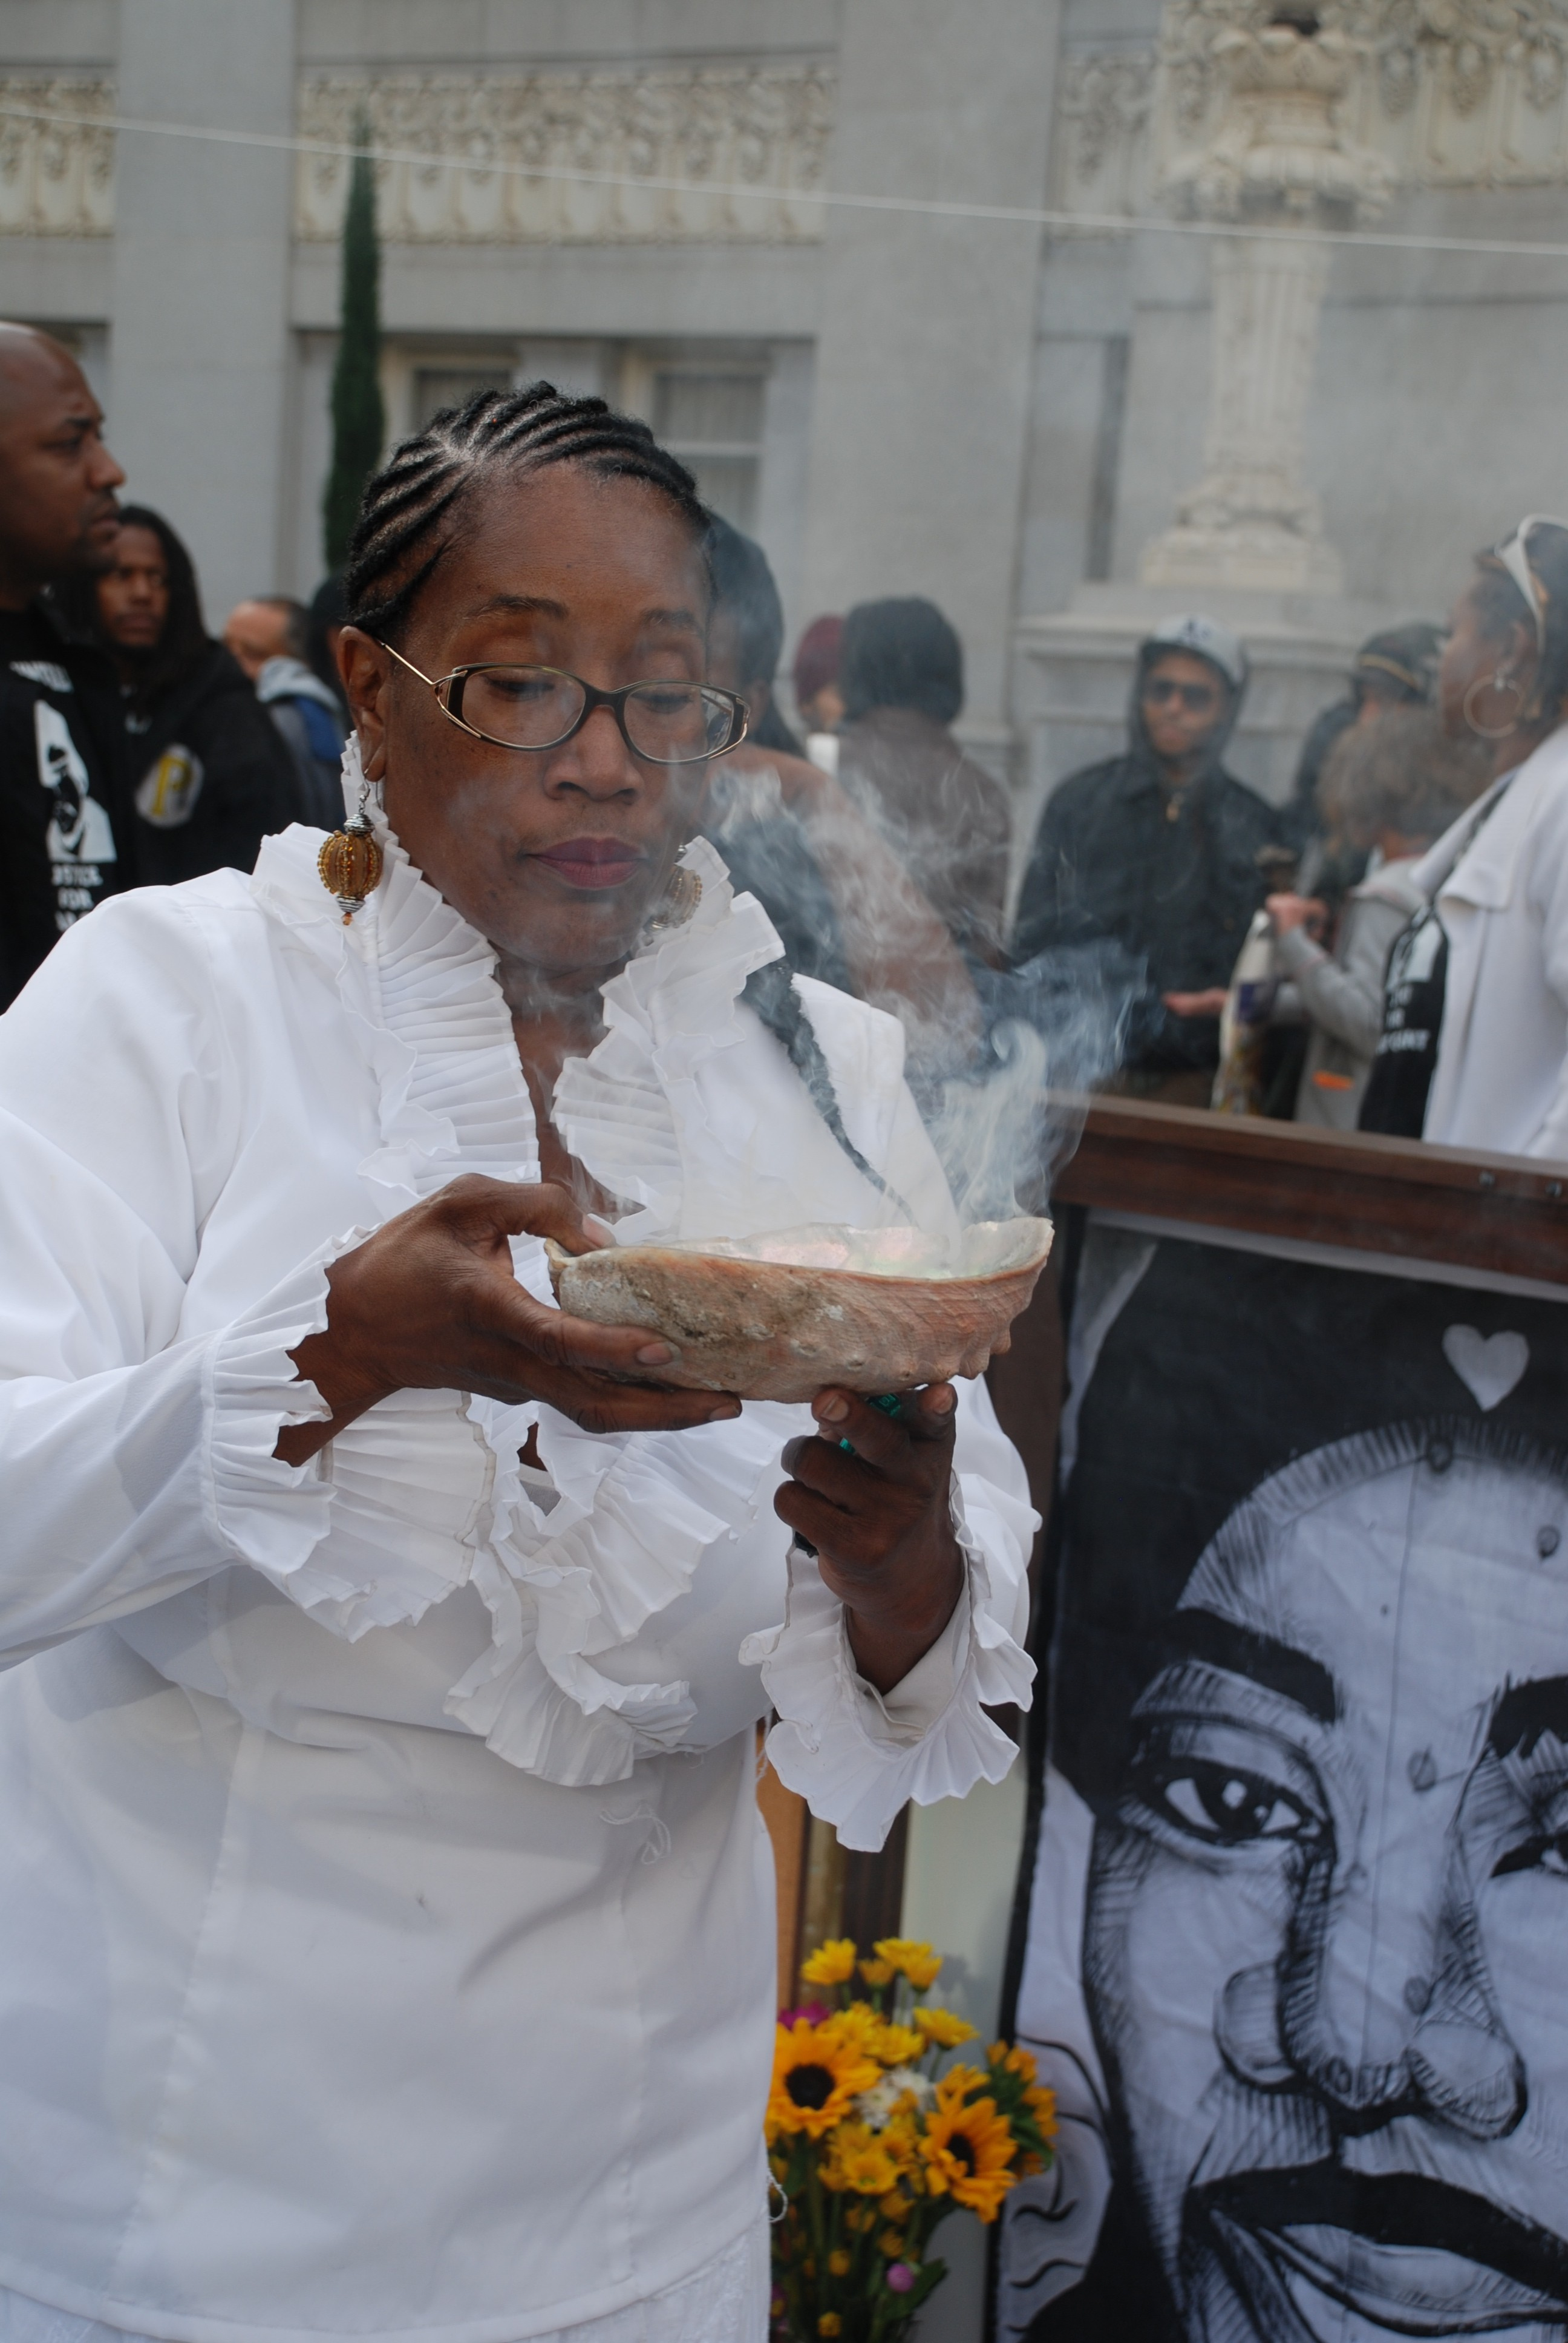 Photo by Oakland Voices contributor Sultanah Corbett